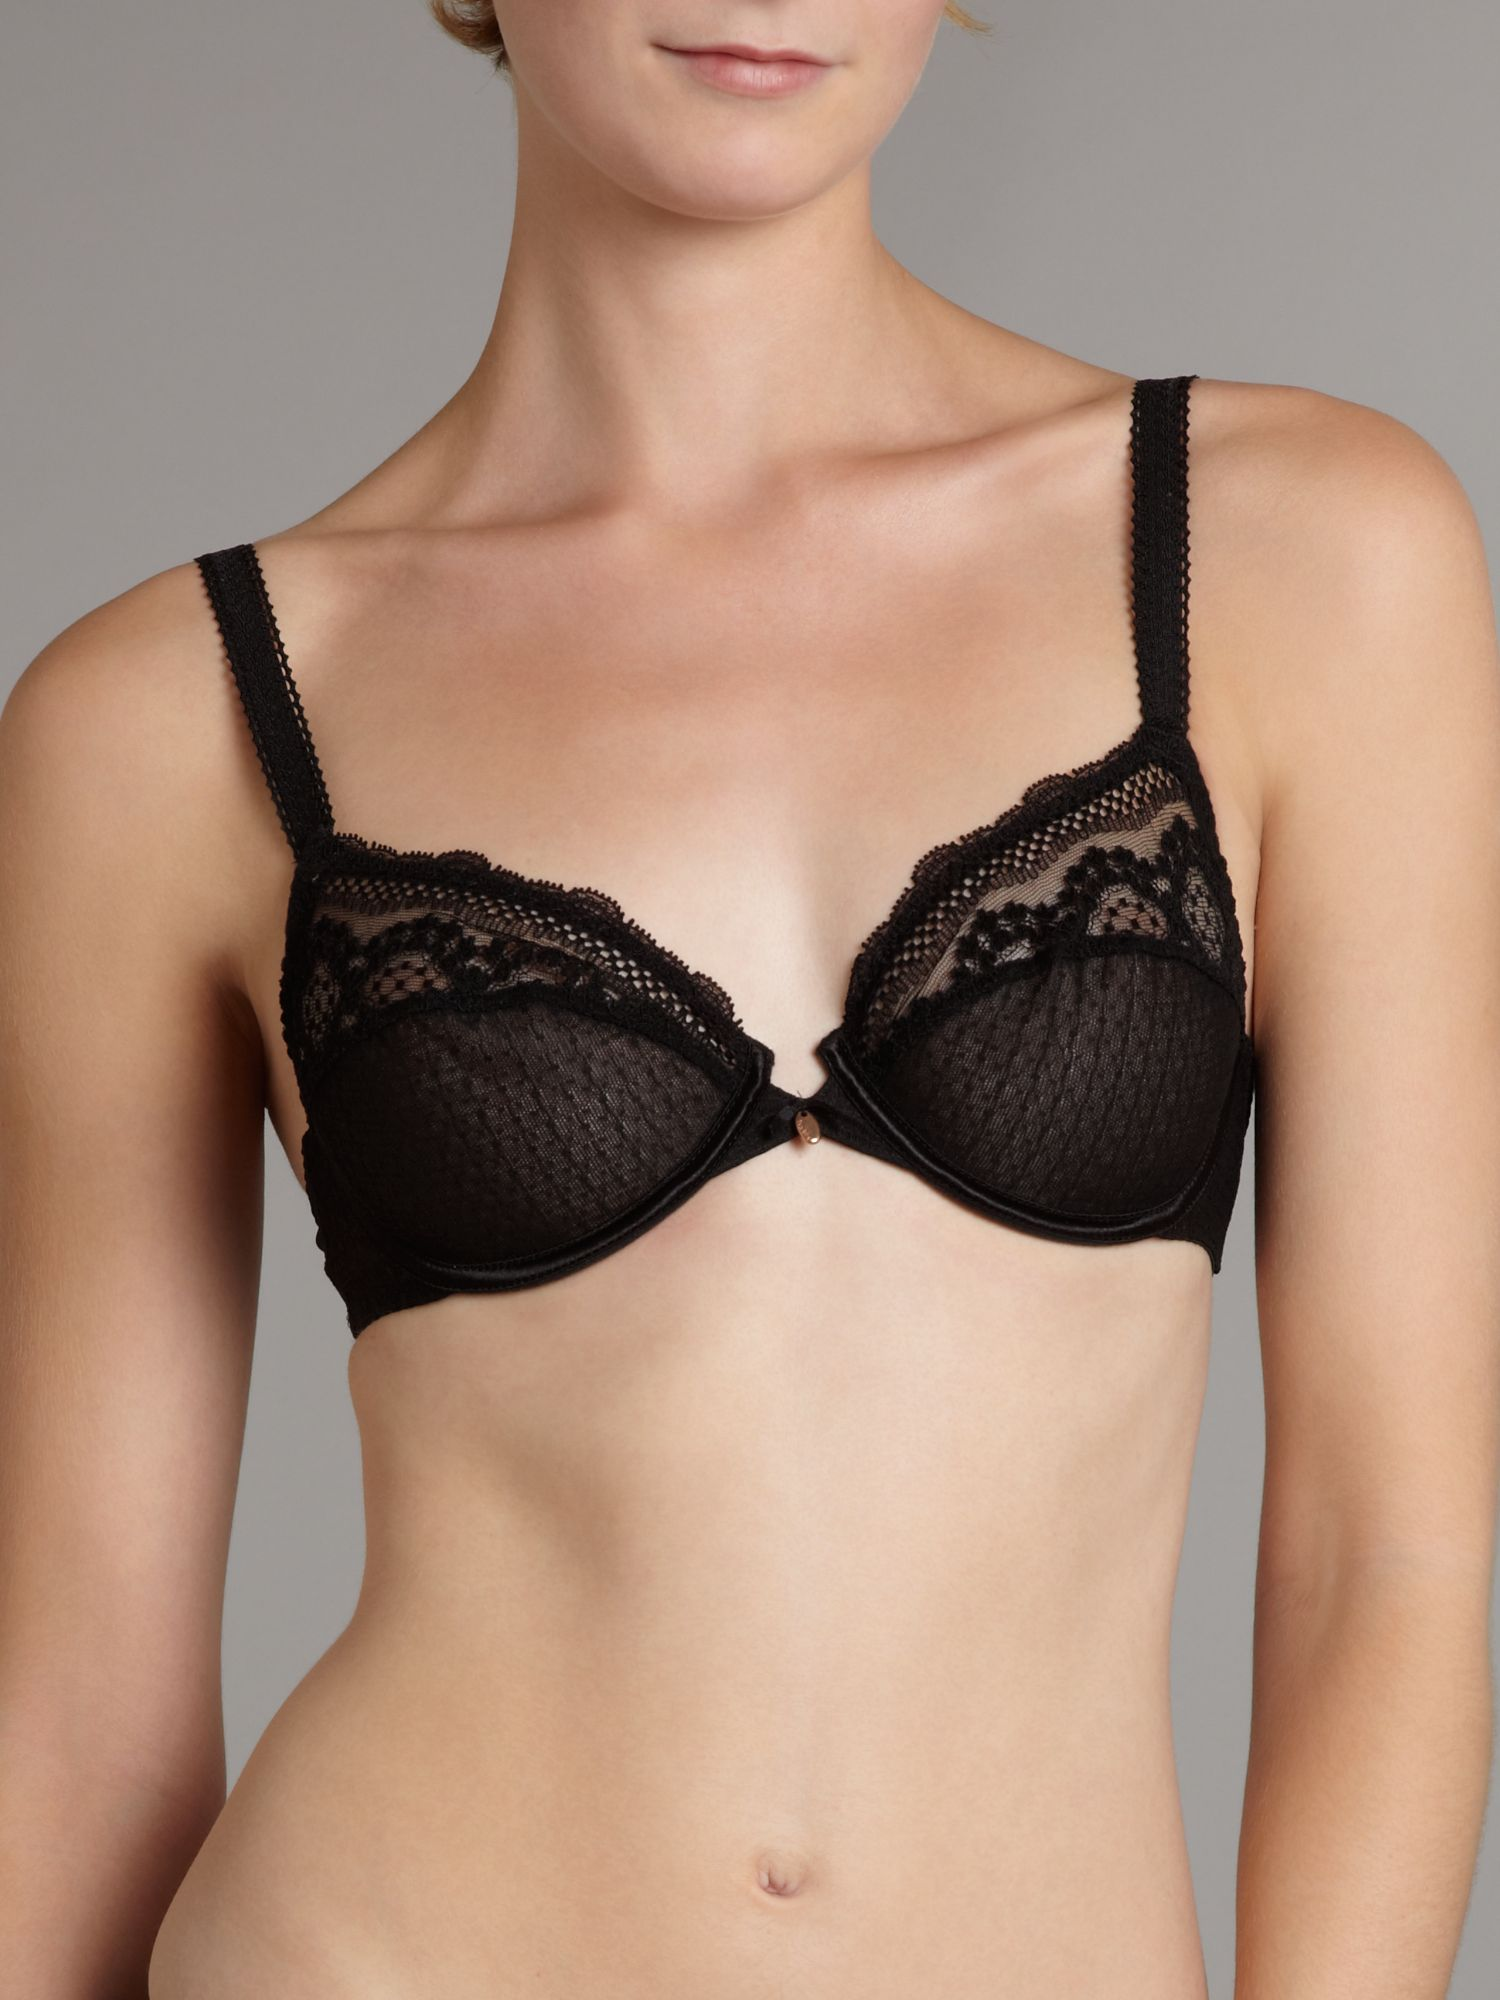 City chic uw bra